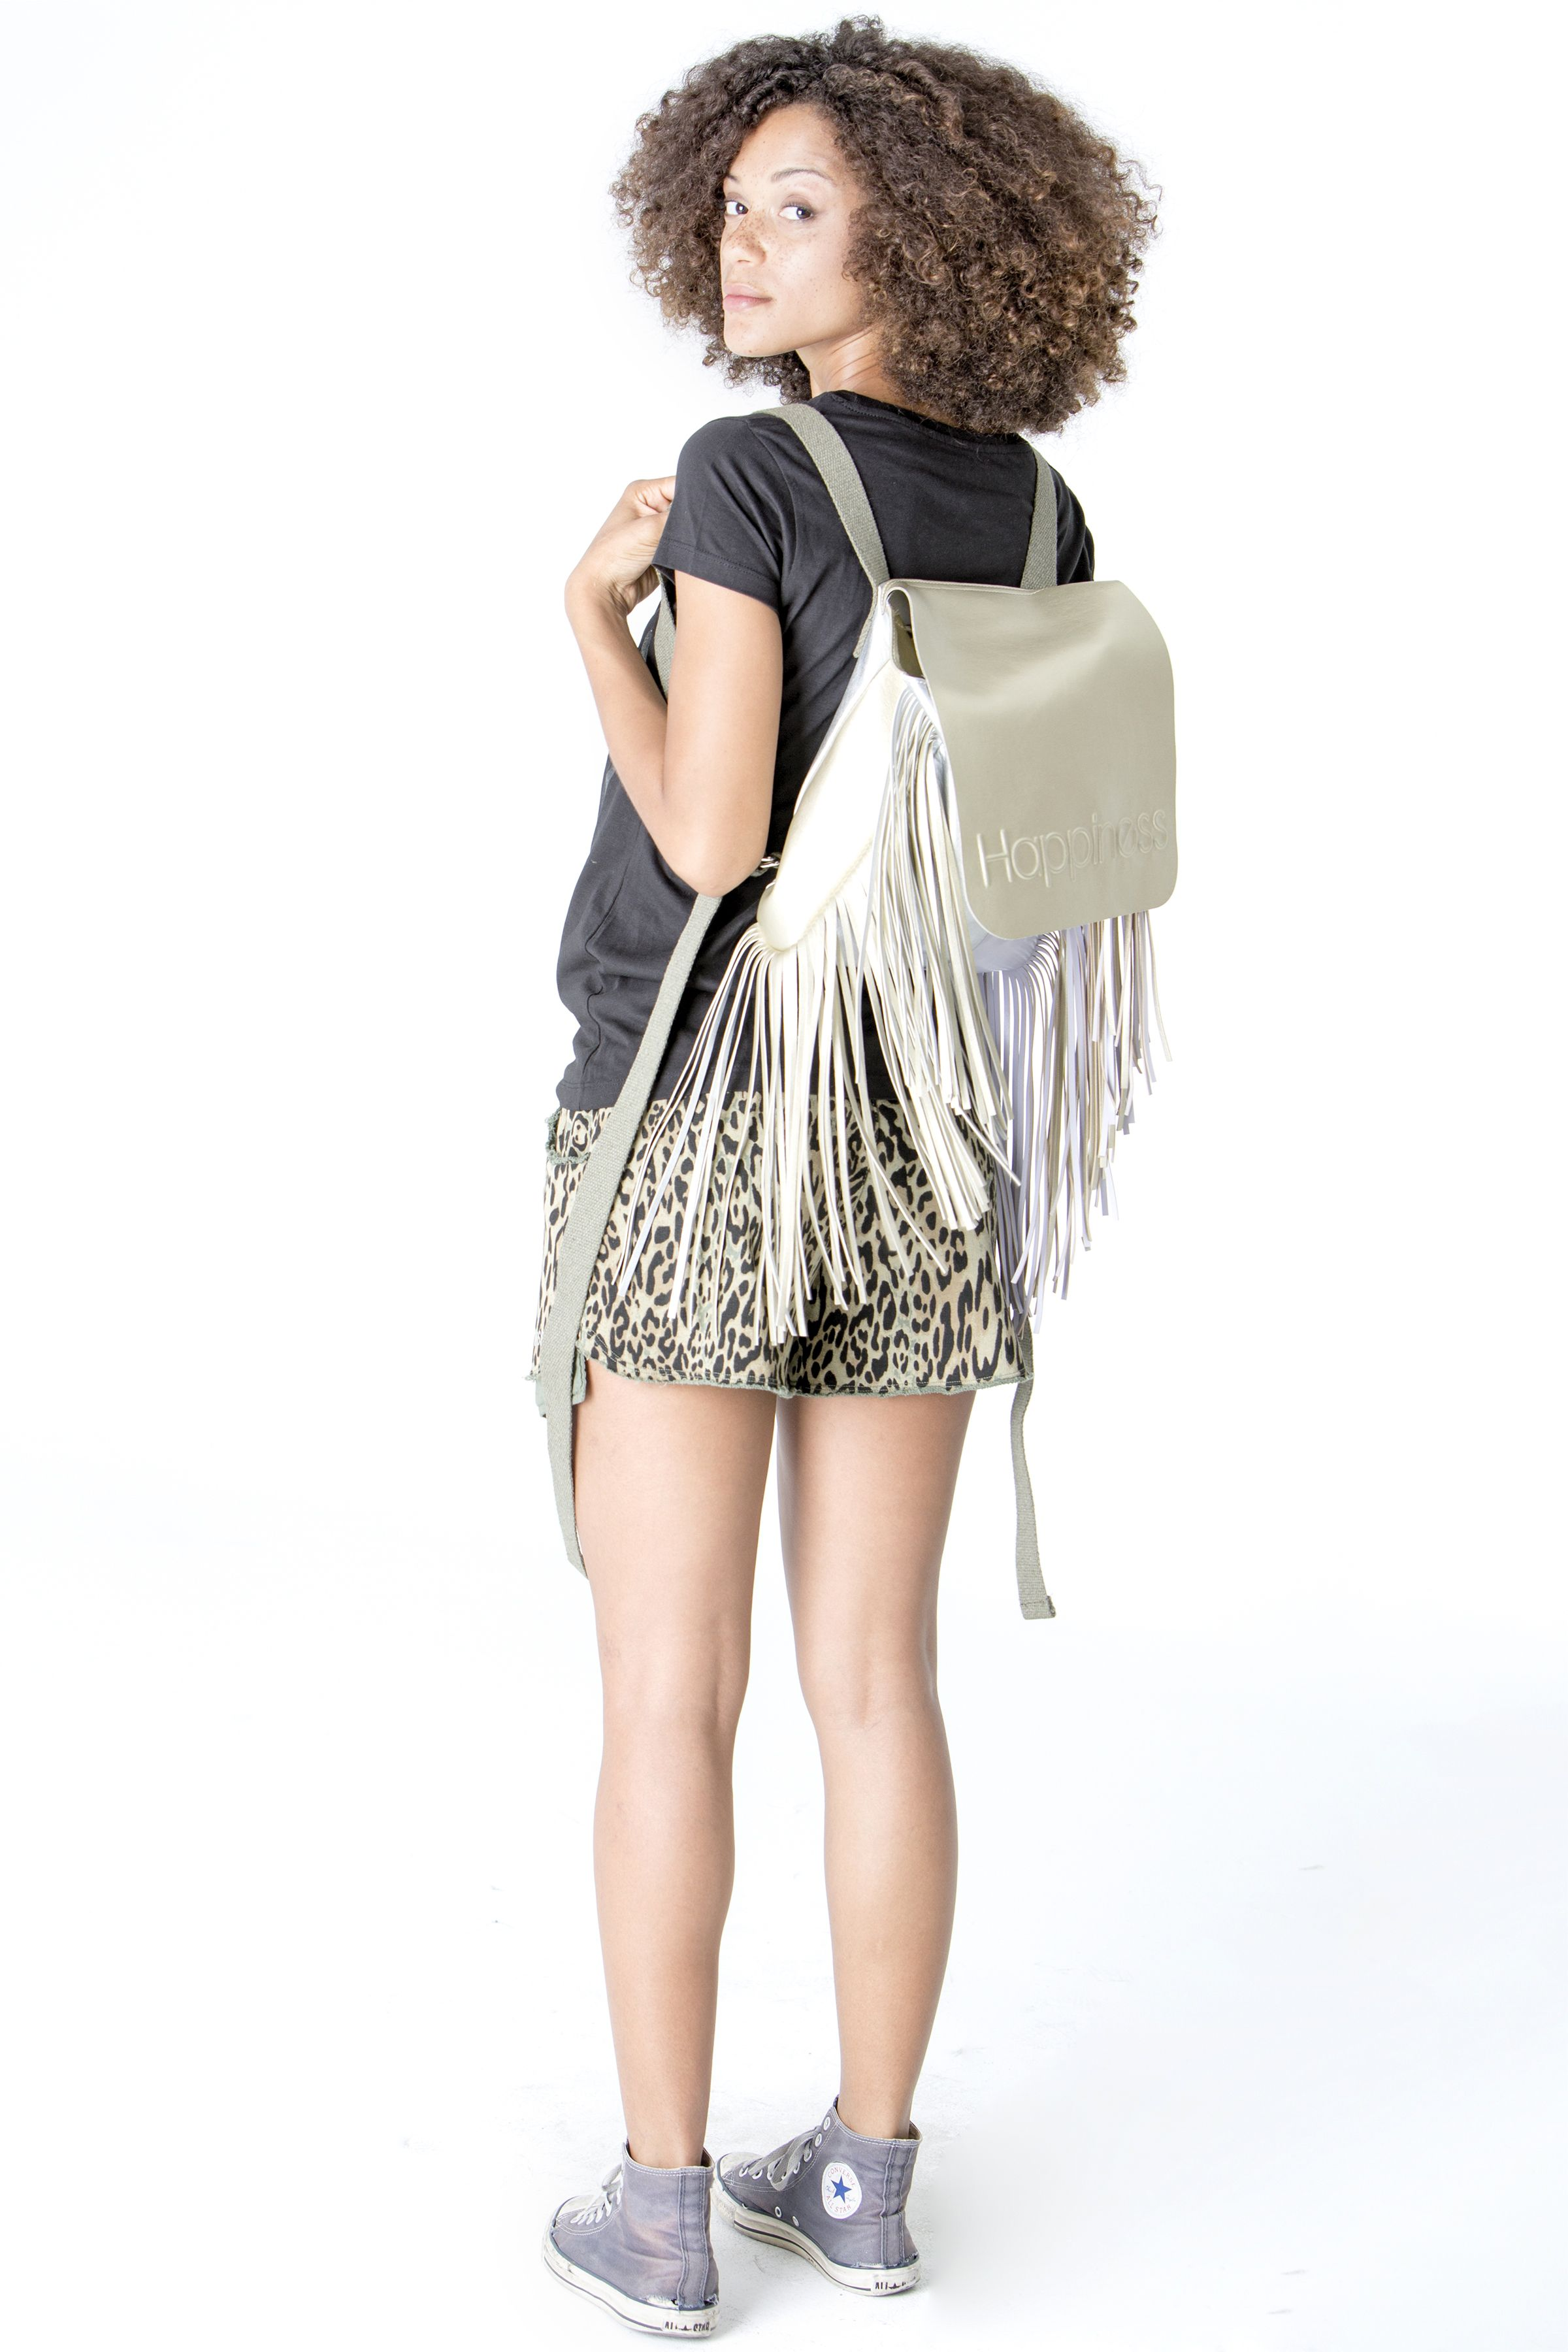 Get this look here! Top: http://www.shophappiness.com/t-shirt-donna-glitter-happiness-logo.html Shorts: http://www.shophappiness.com/pantaloncini-leo-mility.html Backpacks: http://www.shophappiness.com/zaino-happiness-frange-oro.html